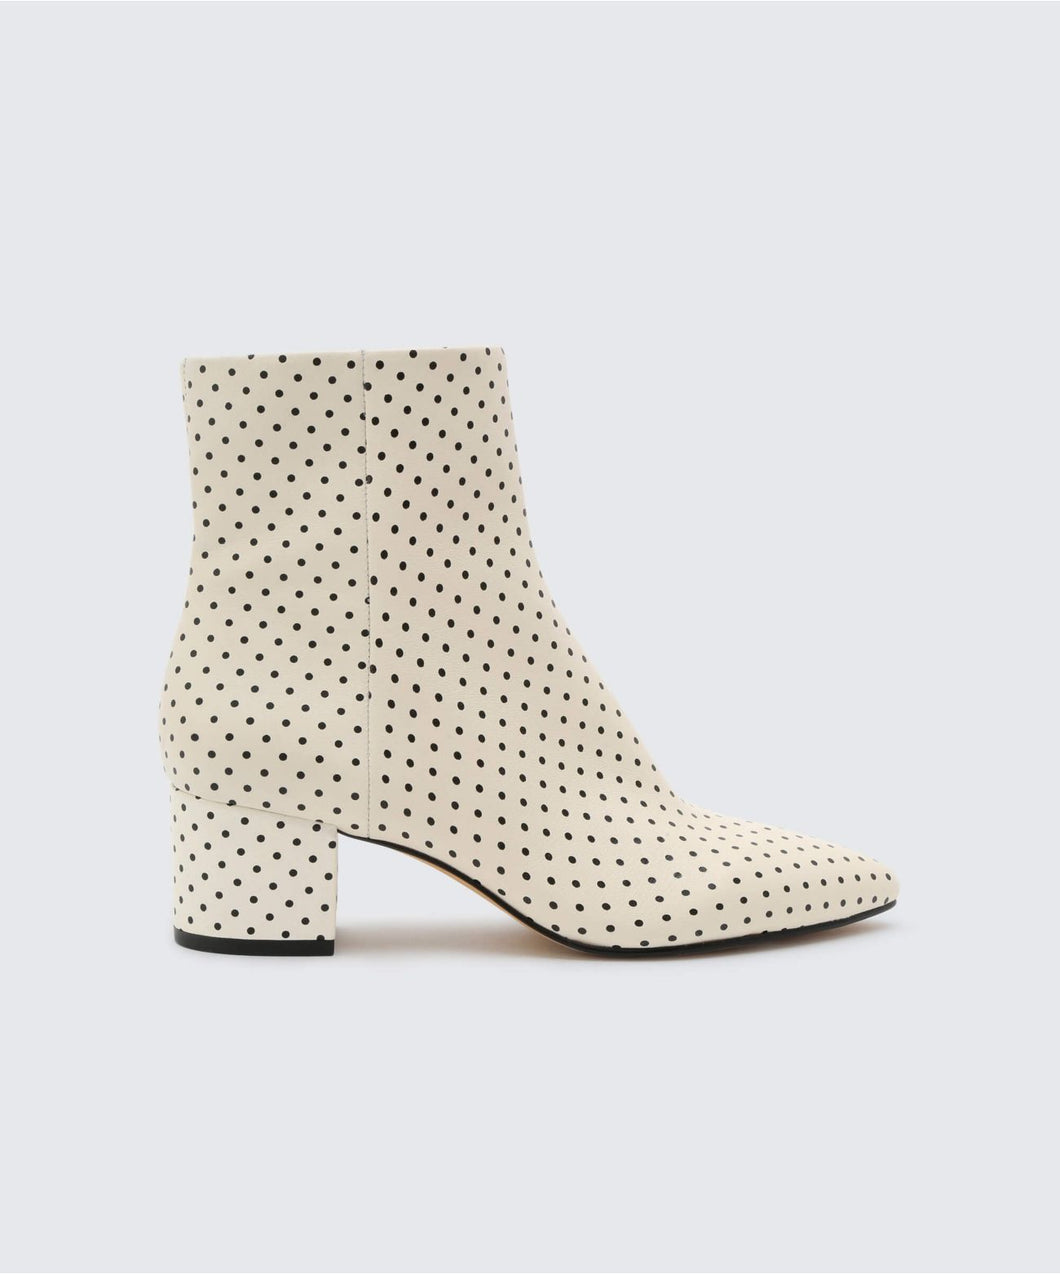 BEL BOOTIES IN WHITE/BLACK -   Dolce Vita